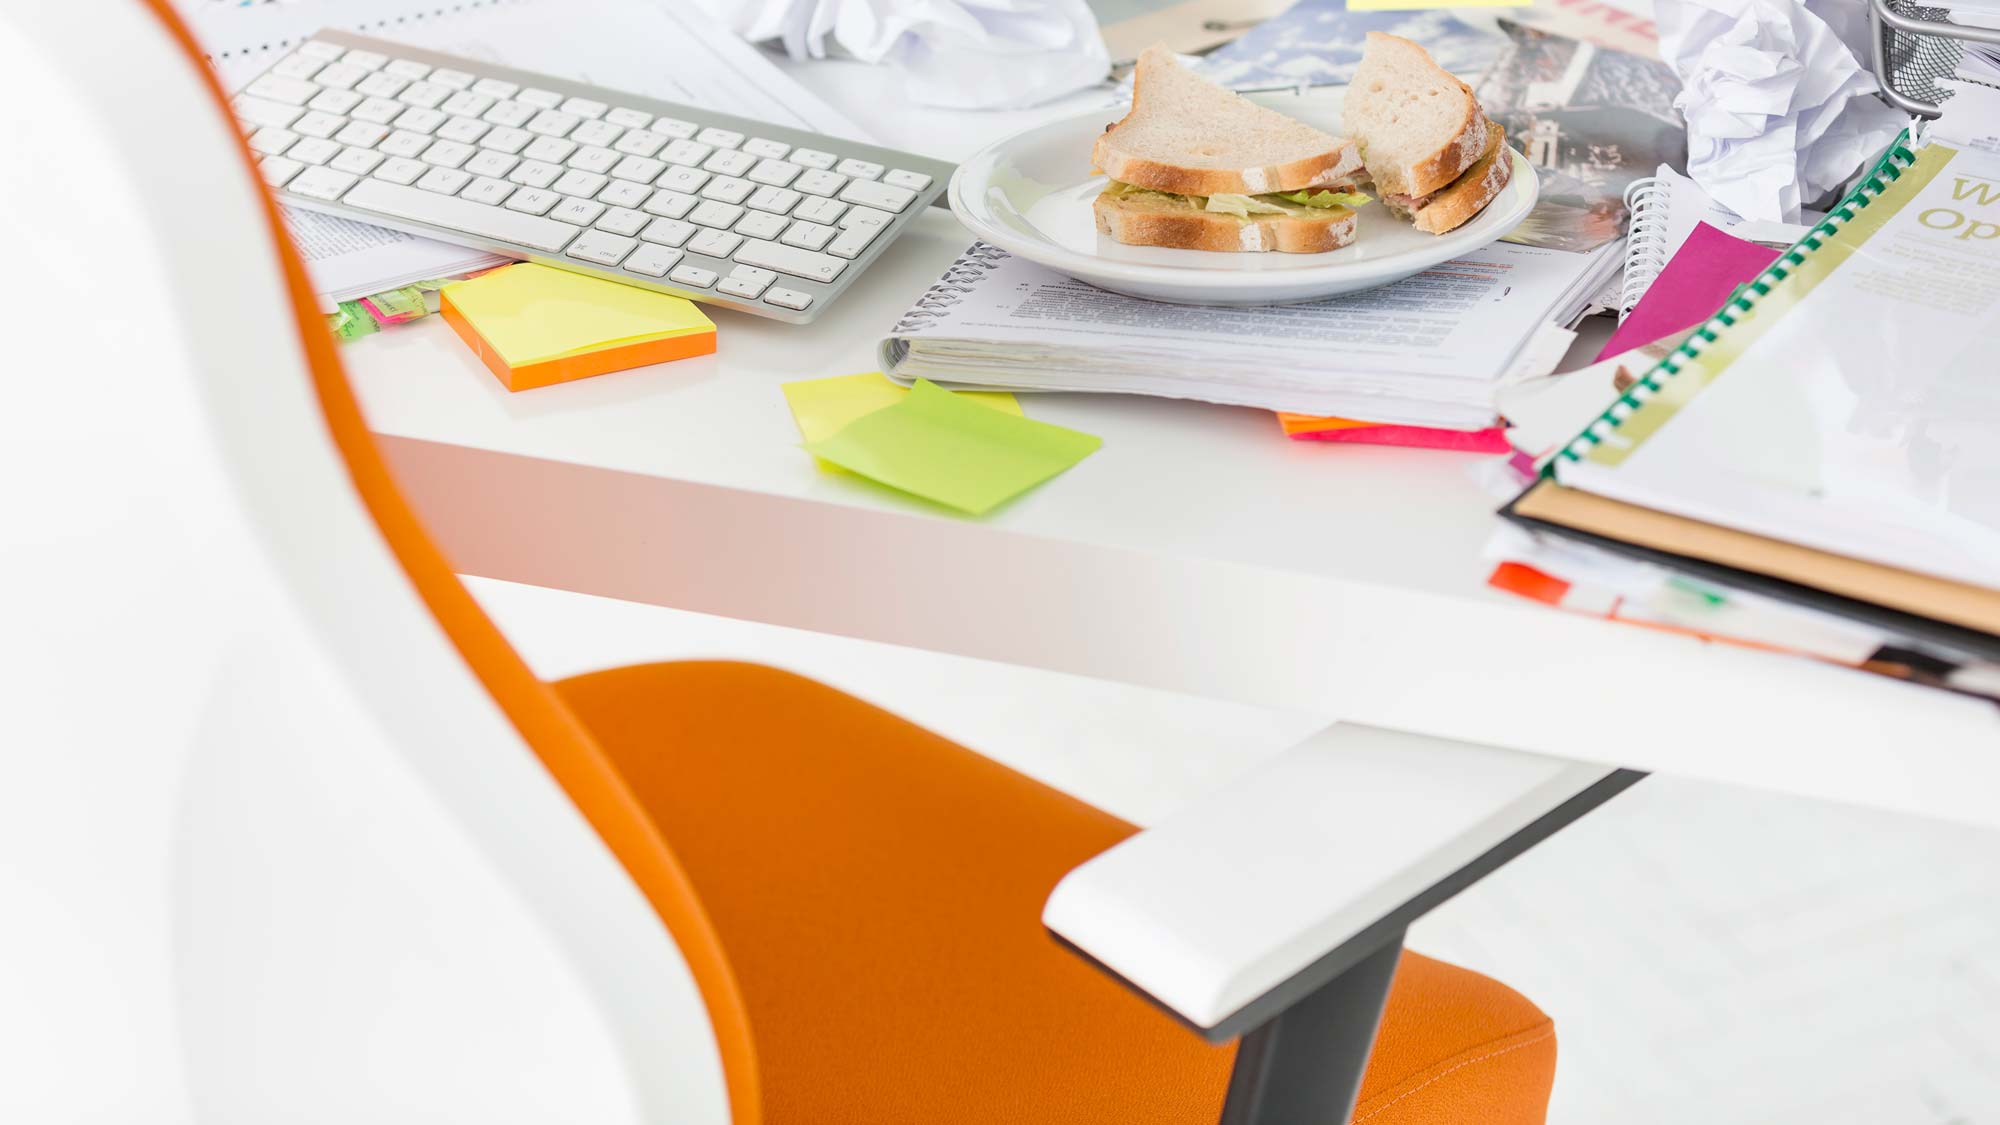 Are you an office snacker